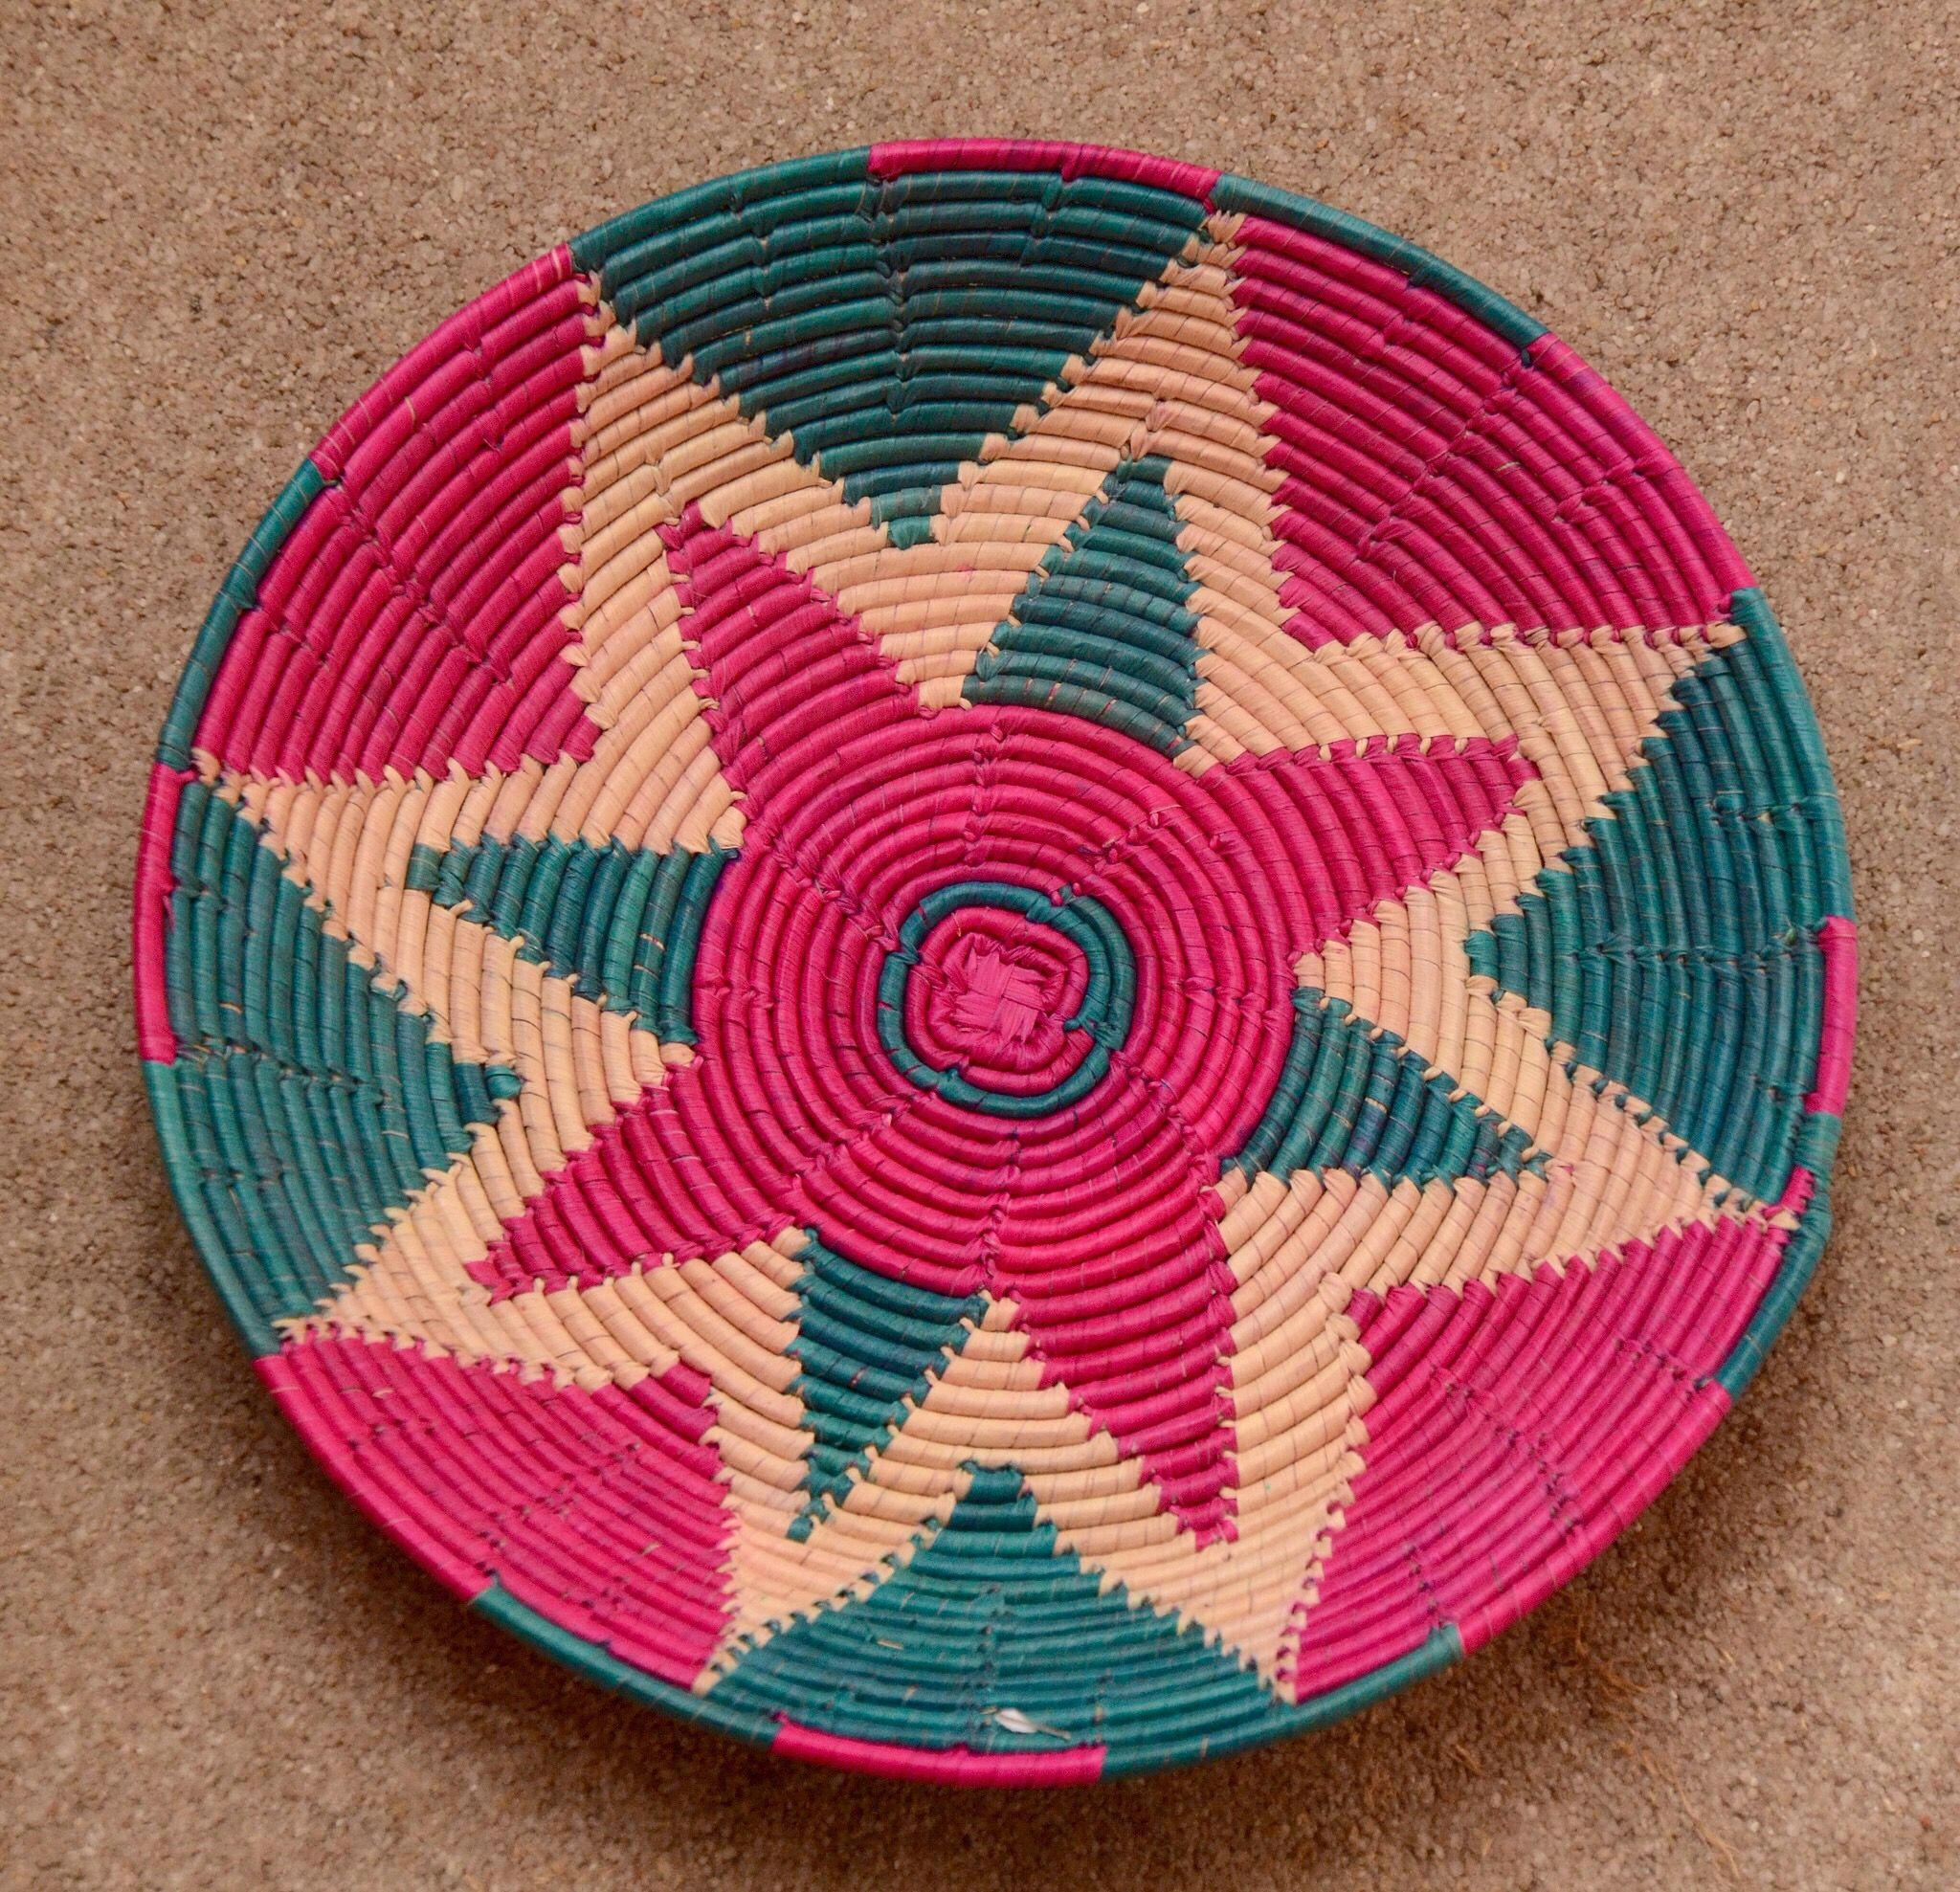 Woven Basket For Bread Changair Pakistani Handicraft Made In